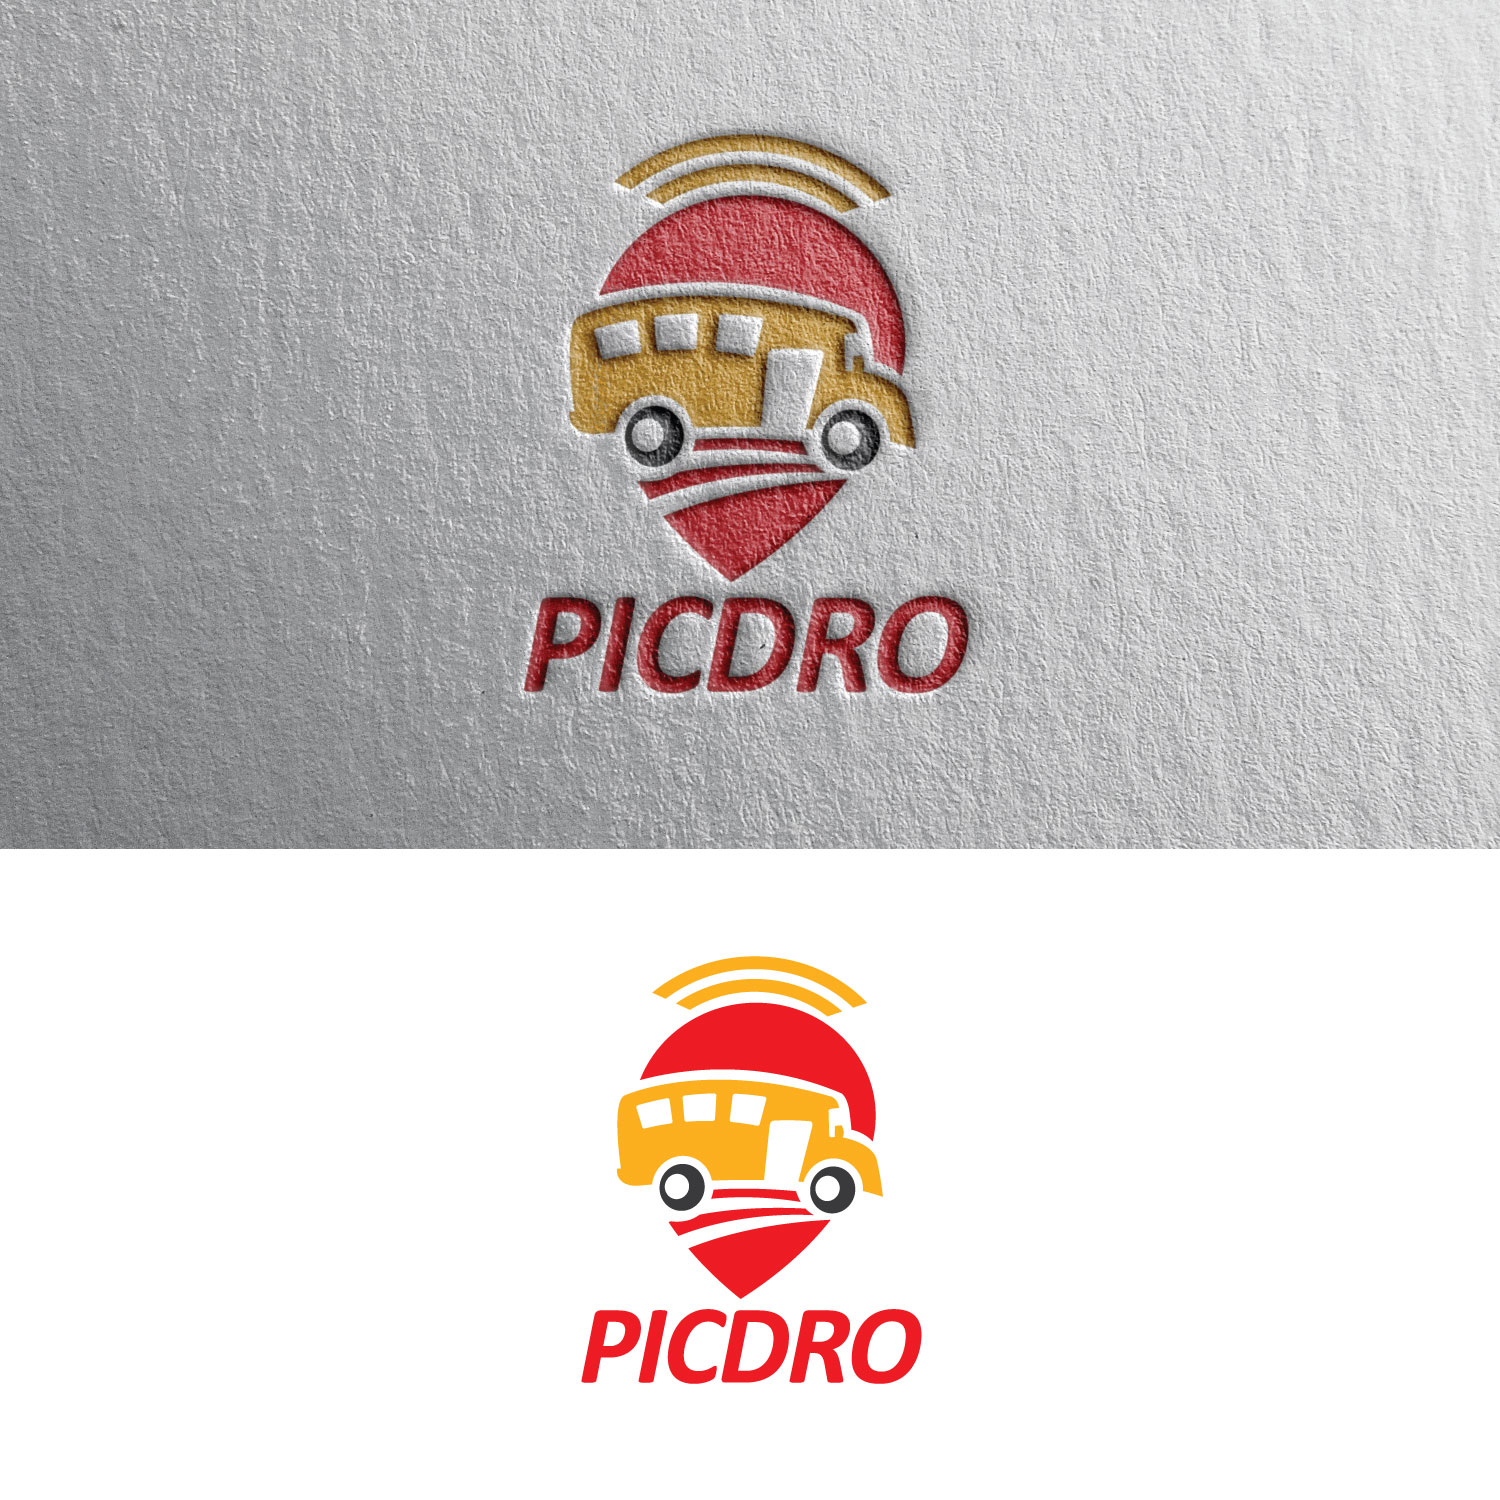 Elegant, Playful, School Logo Design for PICDRO by concepts.